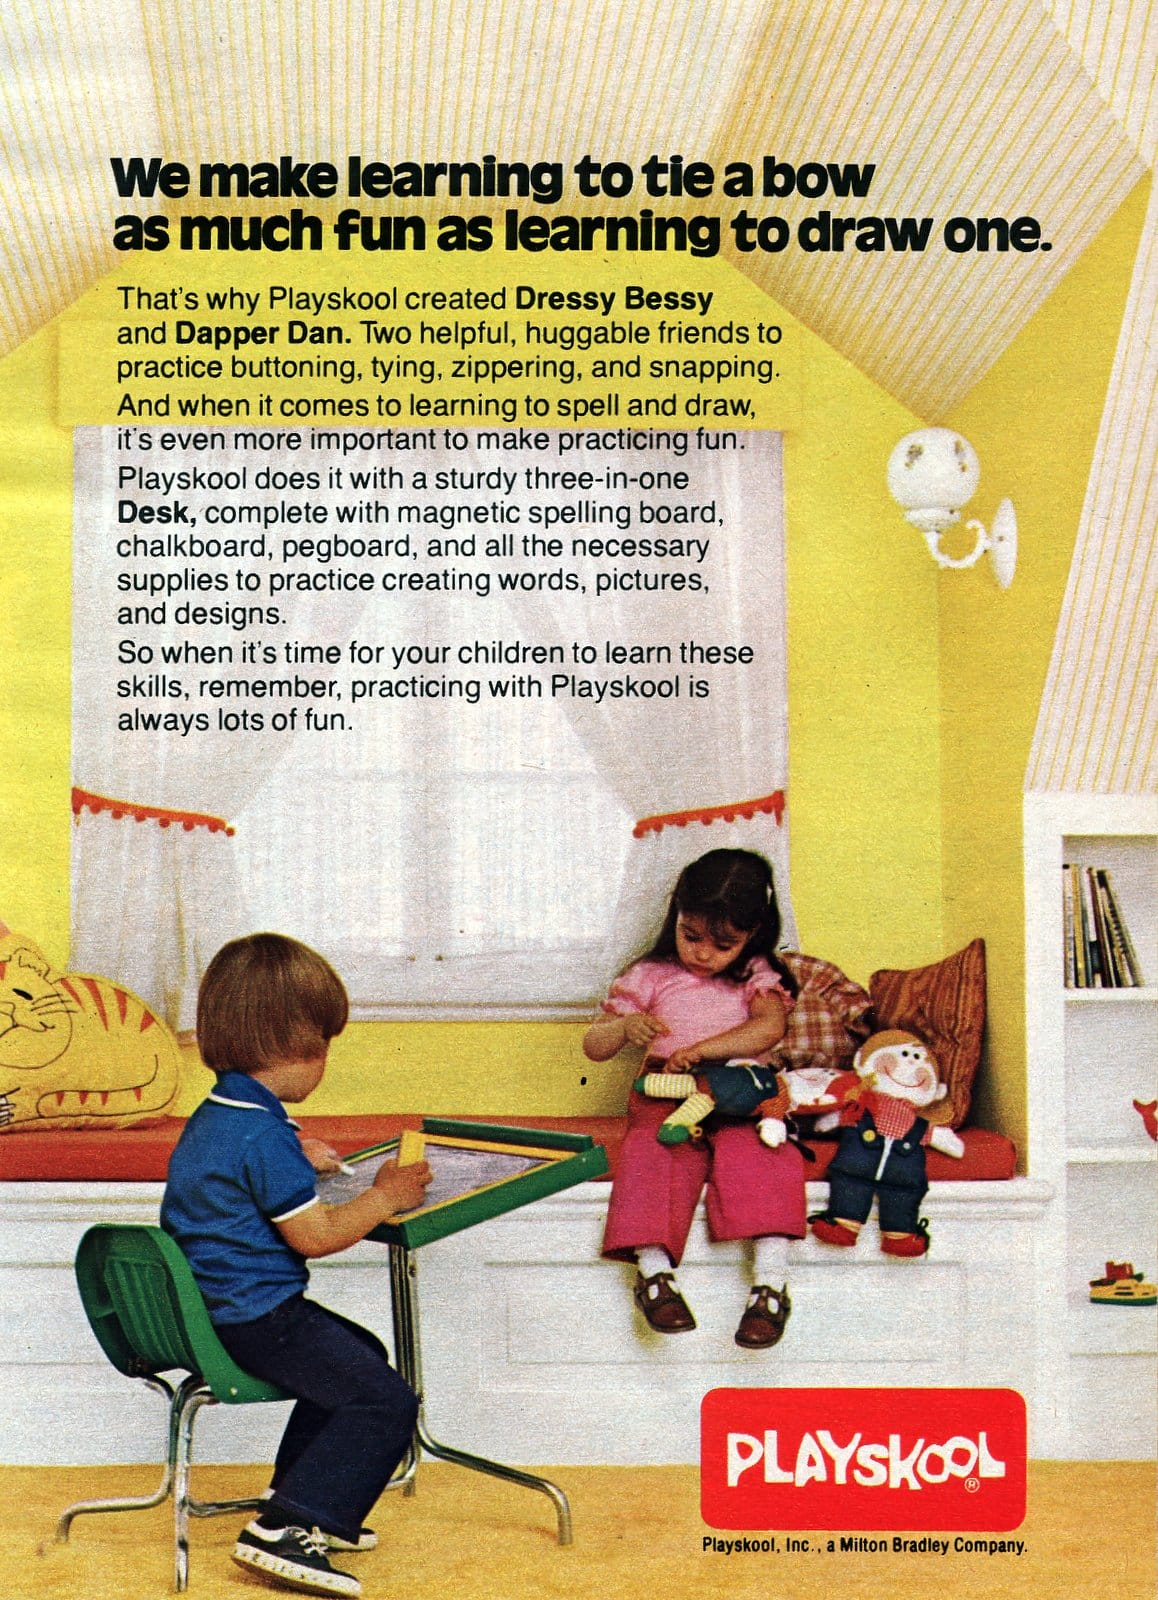 Vintage Dressy Bessy and Dapper Dan dolls plus 3-in-1 desk (1979)